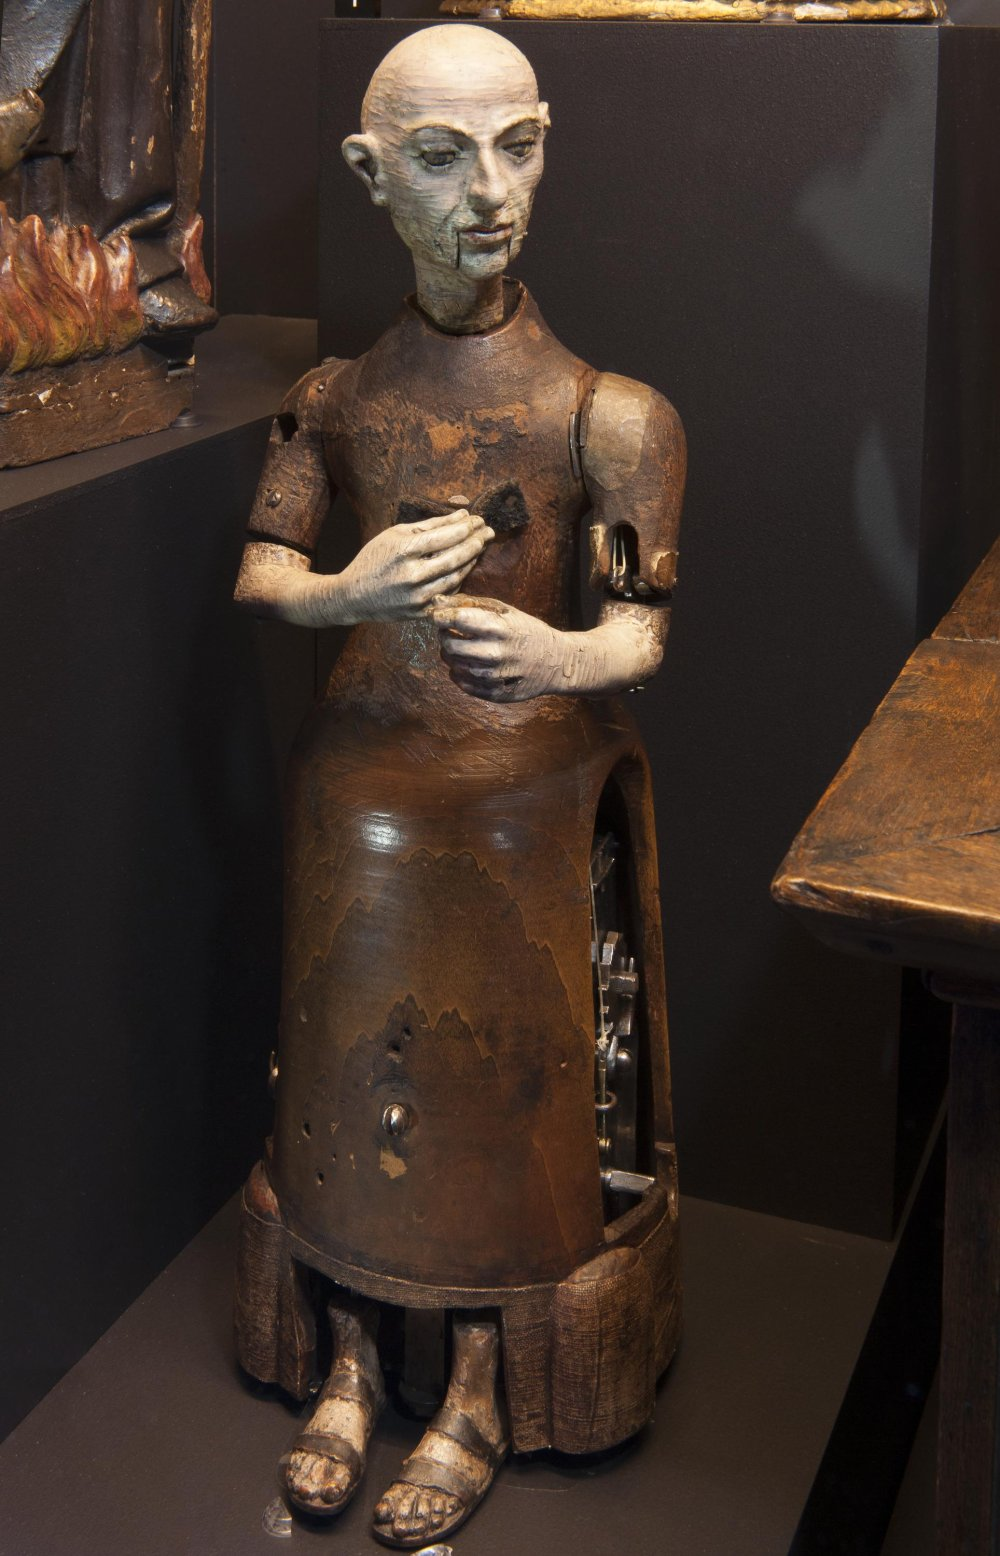 Automaton monk, attributed to Gianello Torriano, Toledo, Spain, c.1560